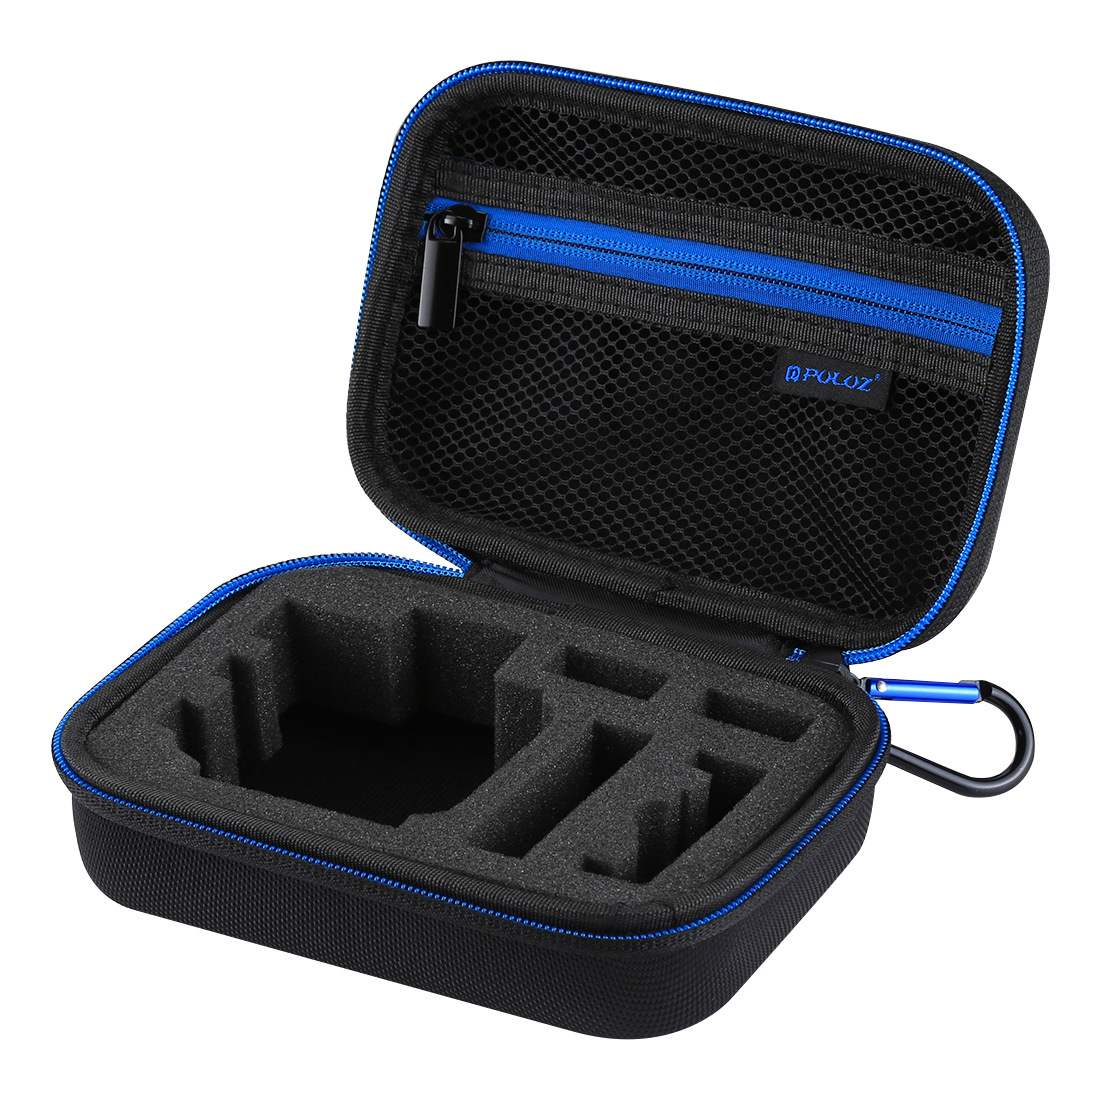 PULUZ Waterproof Travel Carry Bag Case for GoPro HERO 7/6/5/4Session/4/3+/3/2/1 black